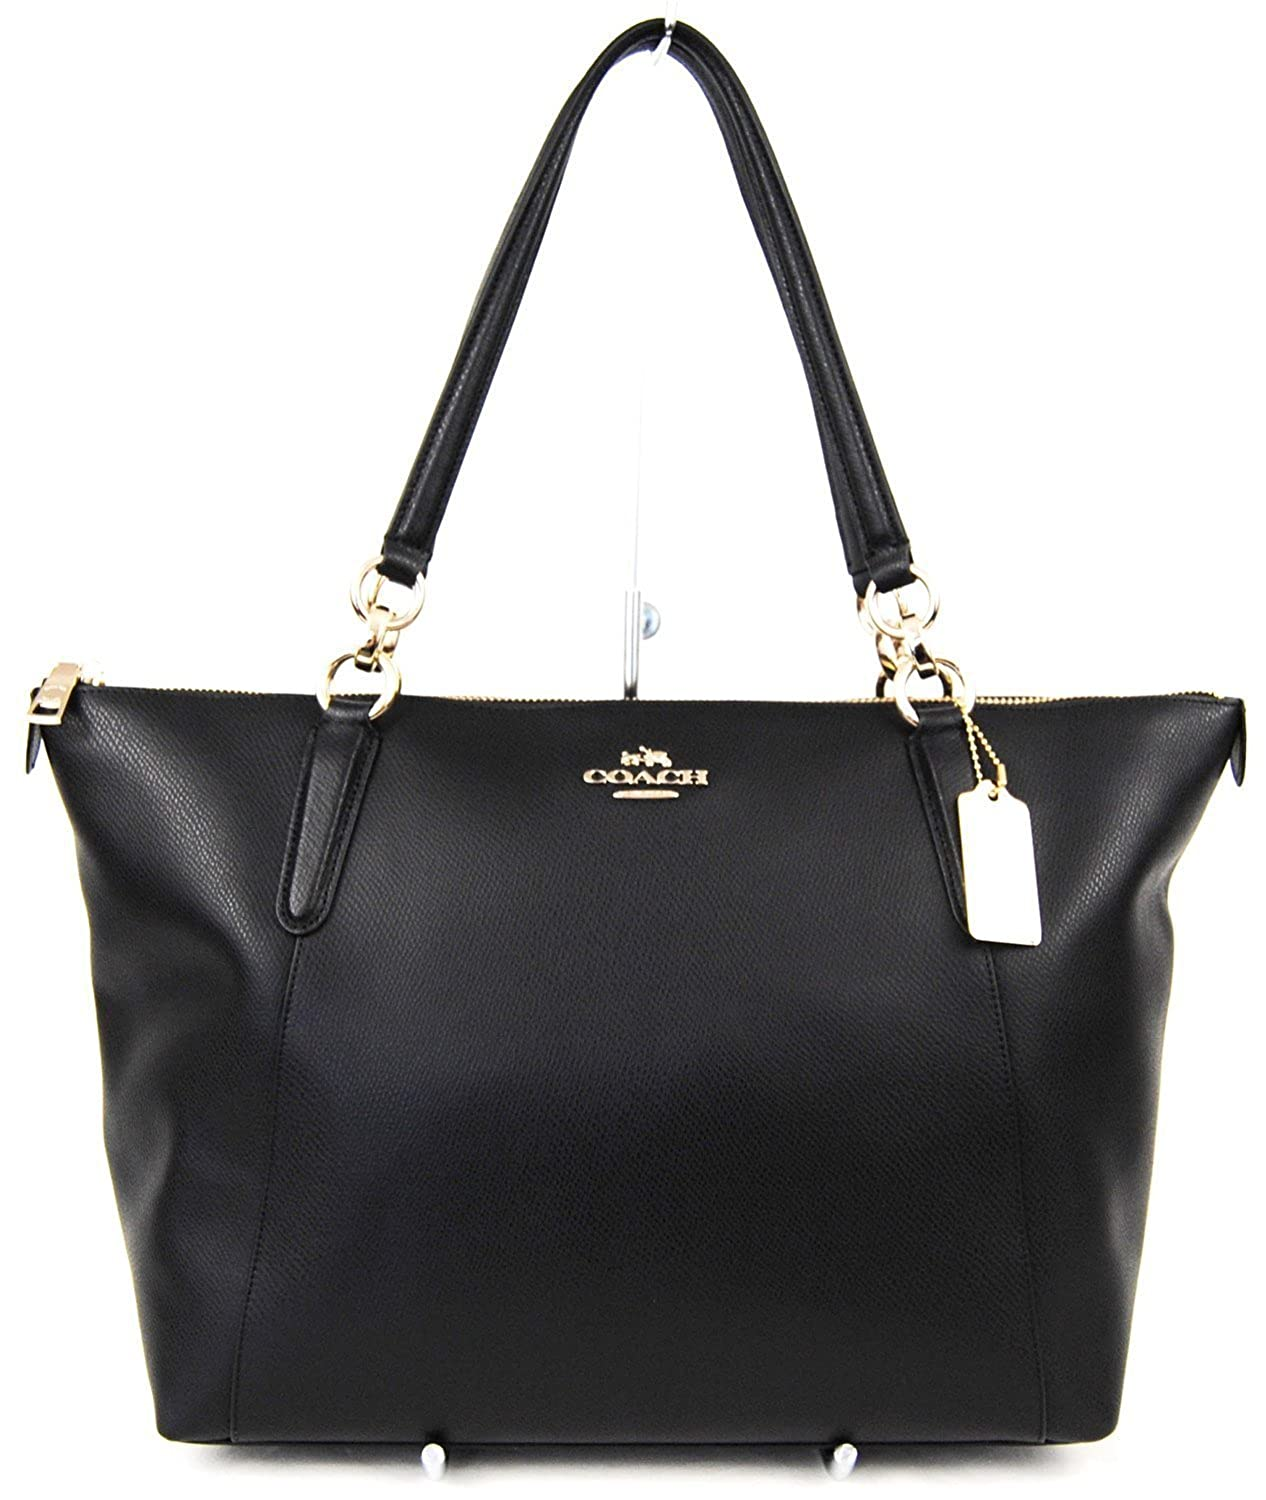 d80ba79a72b4 Amazon.com  AVA Tote in Crossgrain Leather in Black  350.00  Shoes